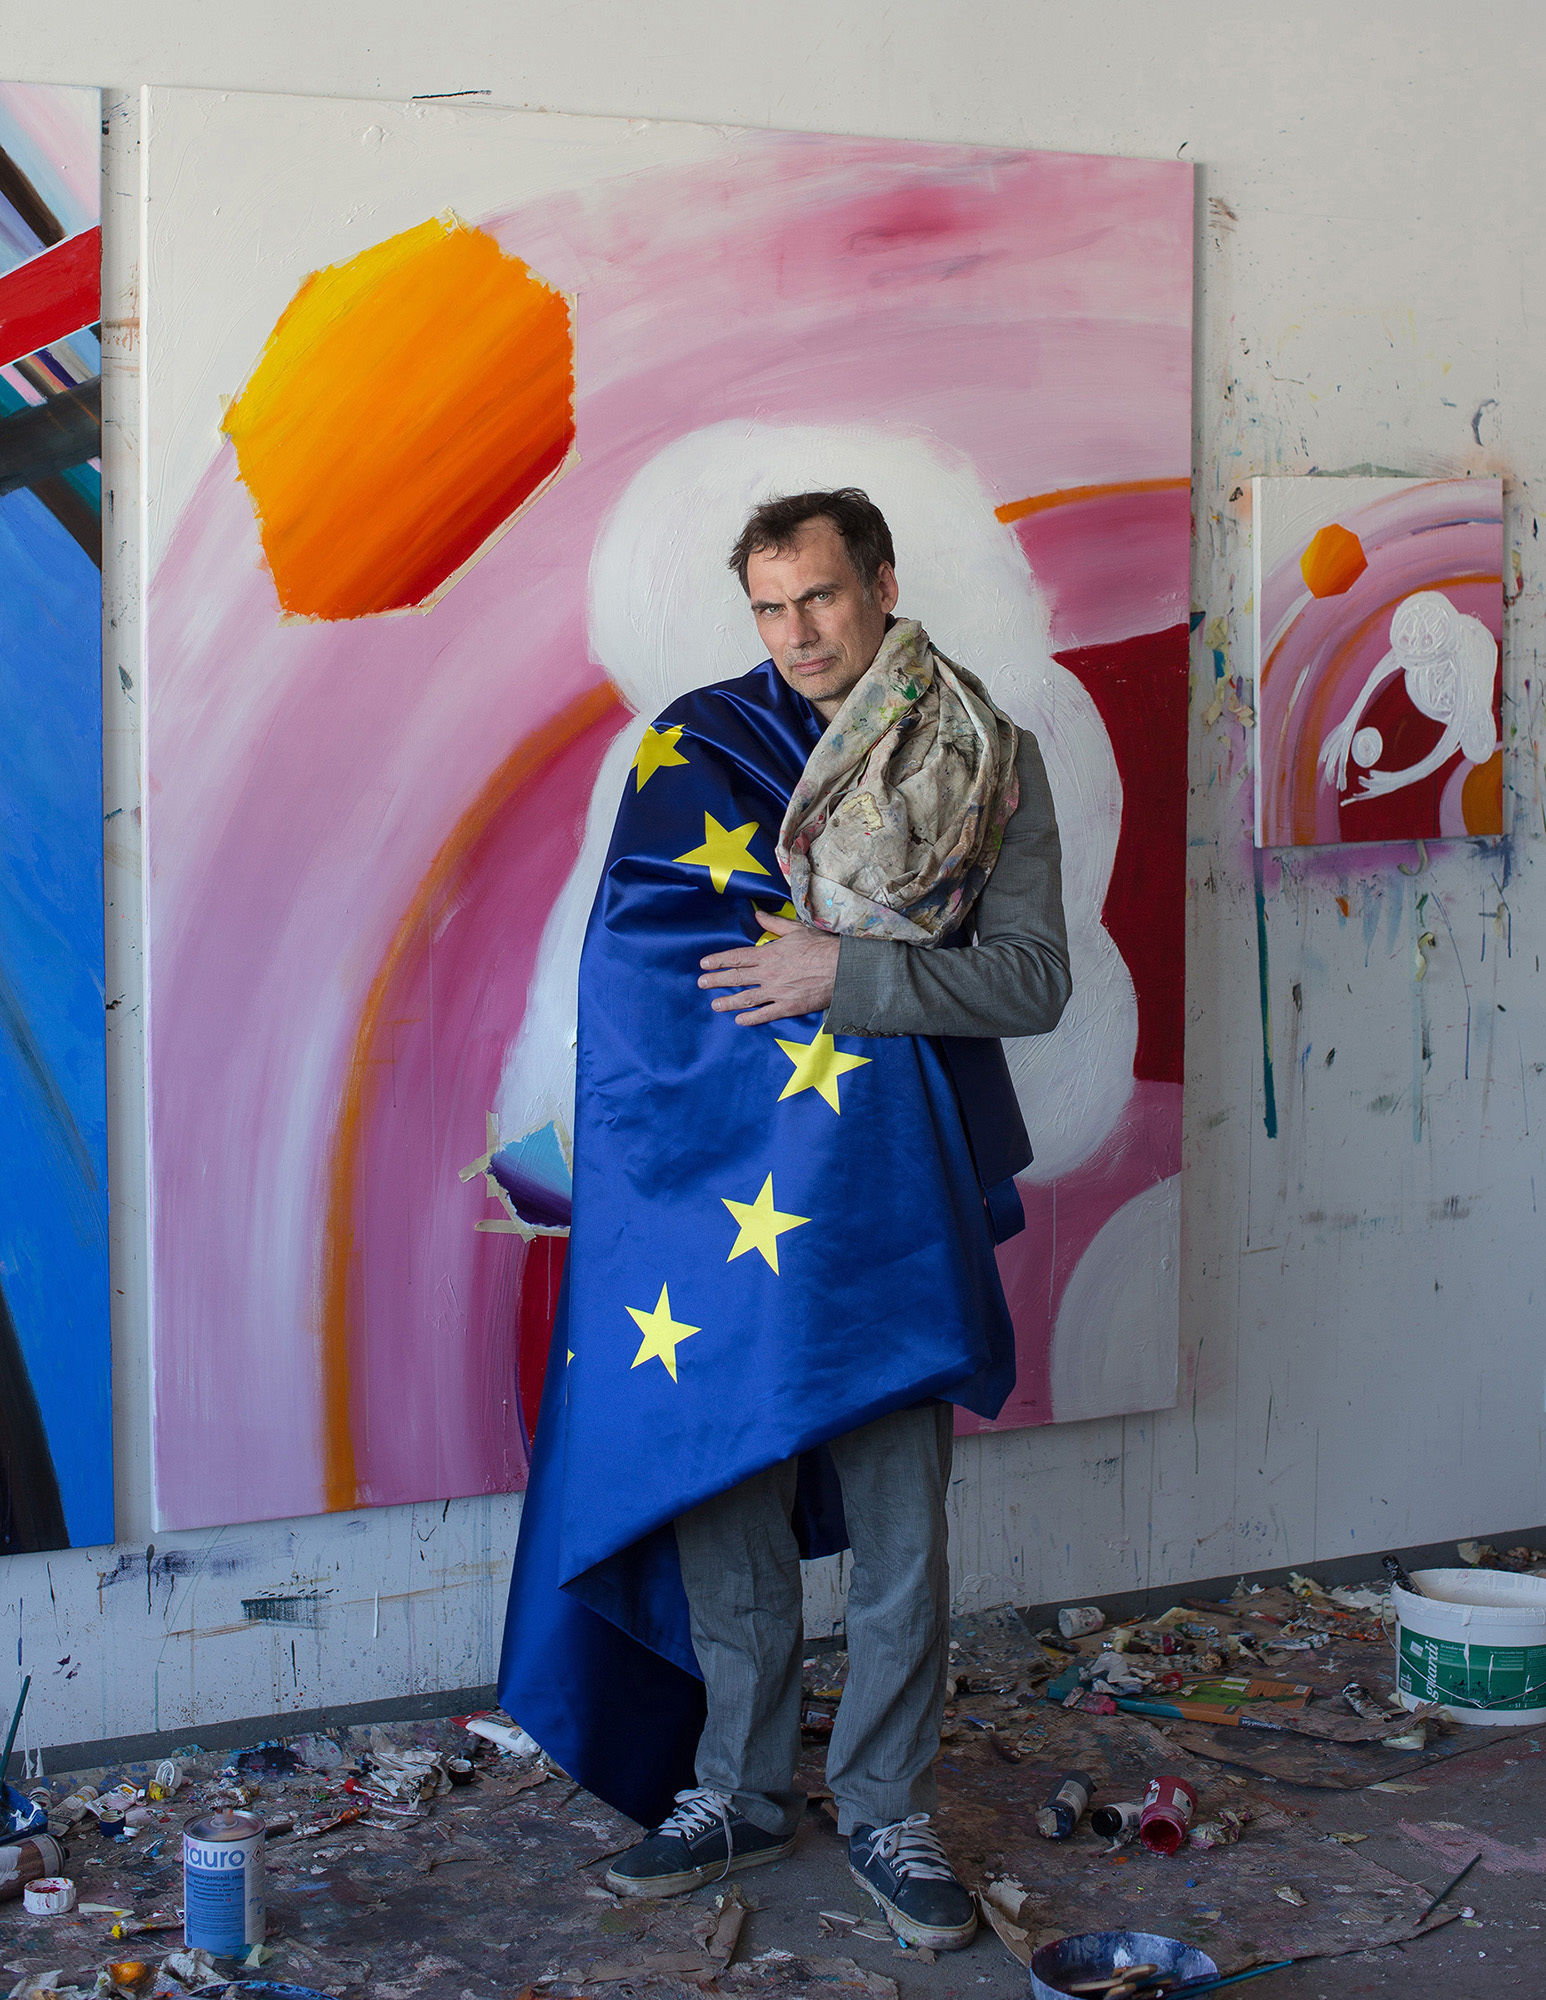 CHRISTA KLUBERT PHOTOGRAPHERS: OLIVER MARK WITH EUROPE FOR EUROPE